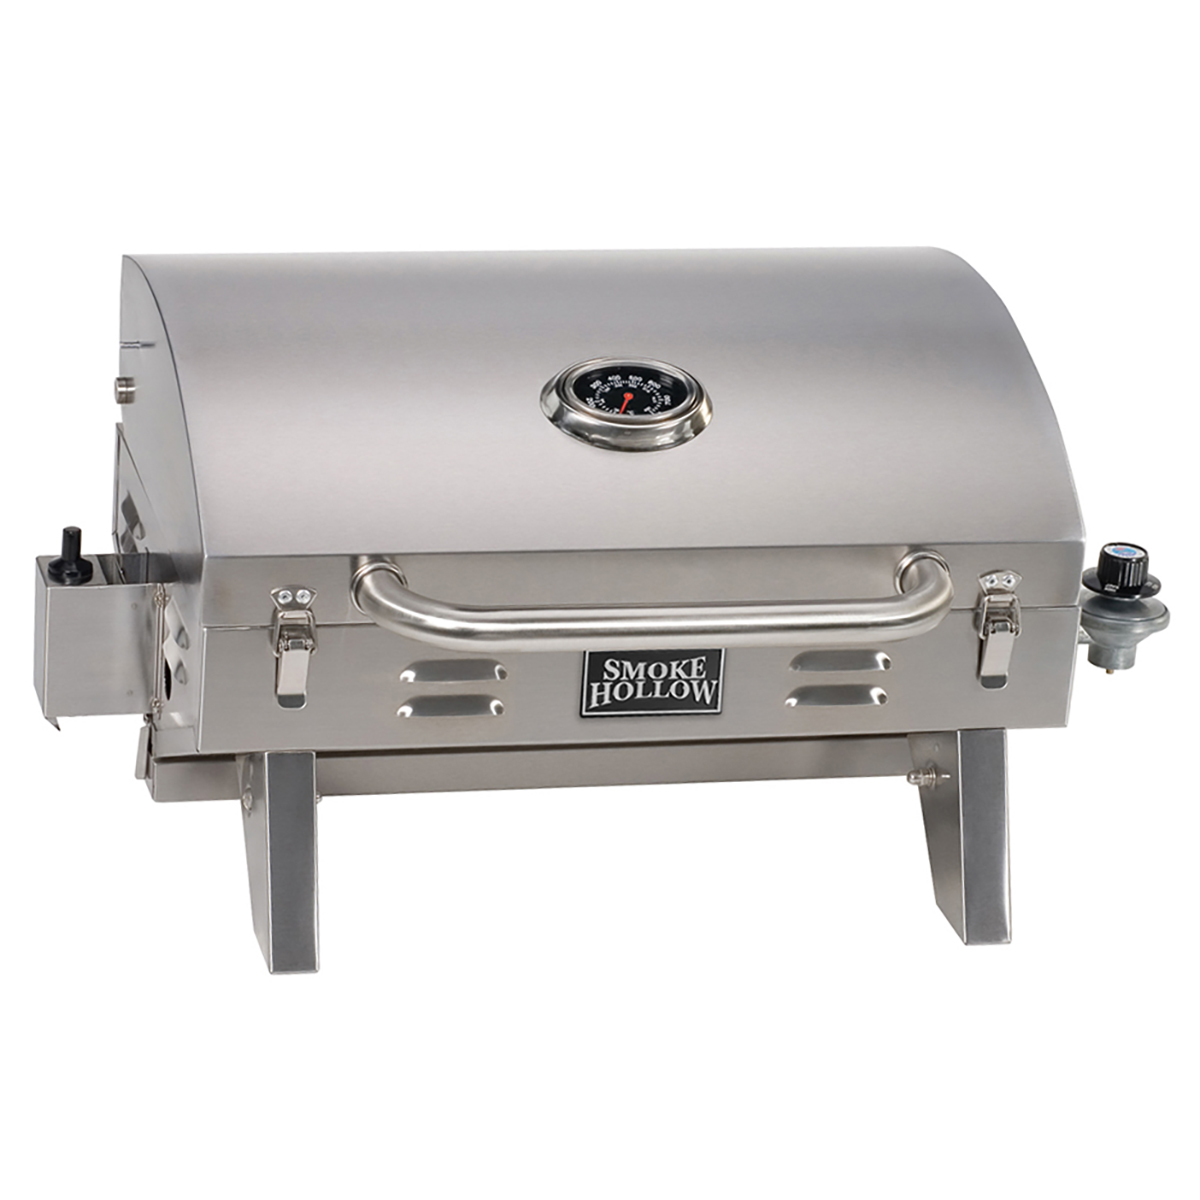 Smoke Hollow Stainless Steel Tabletop Grill photo